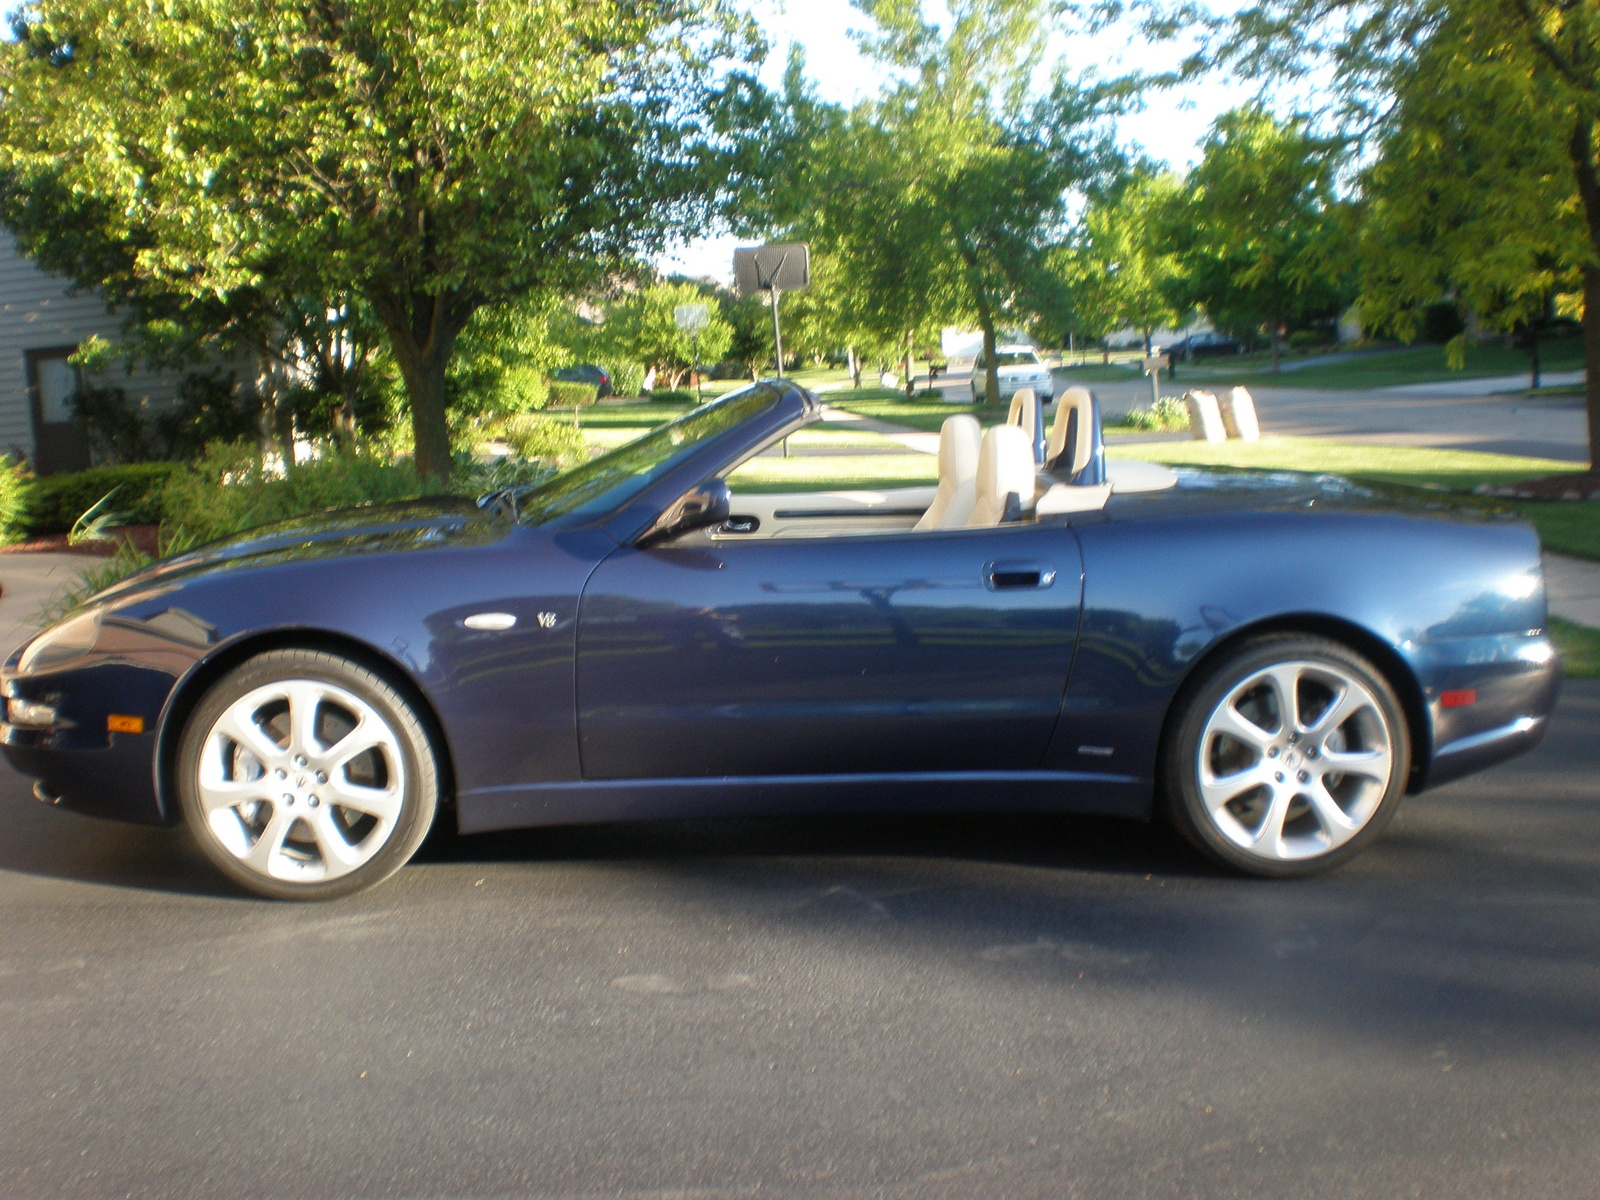 http://auto-database.com/image/pictures-of-maserati-spyder-2003-160477.jpg